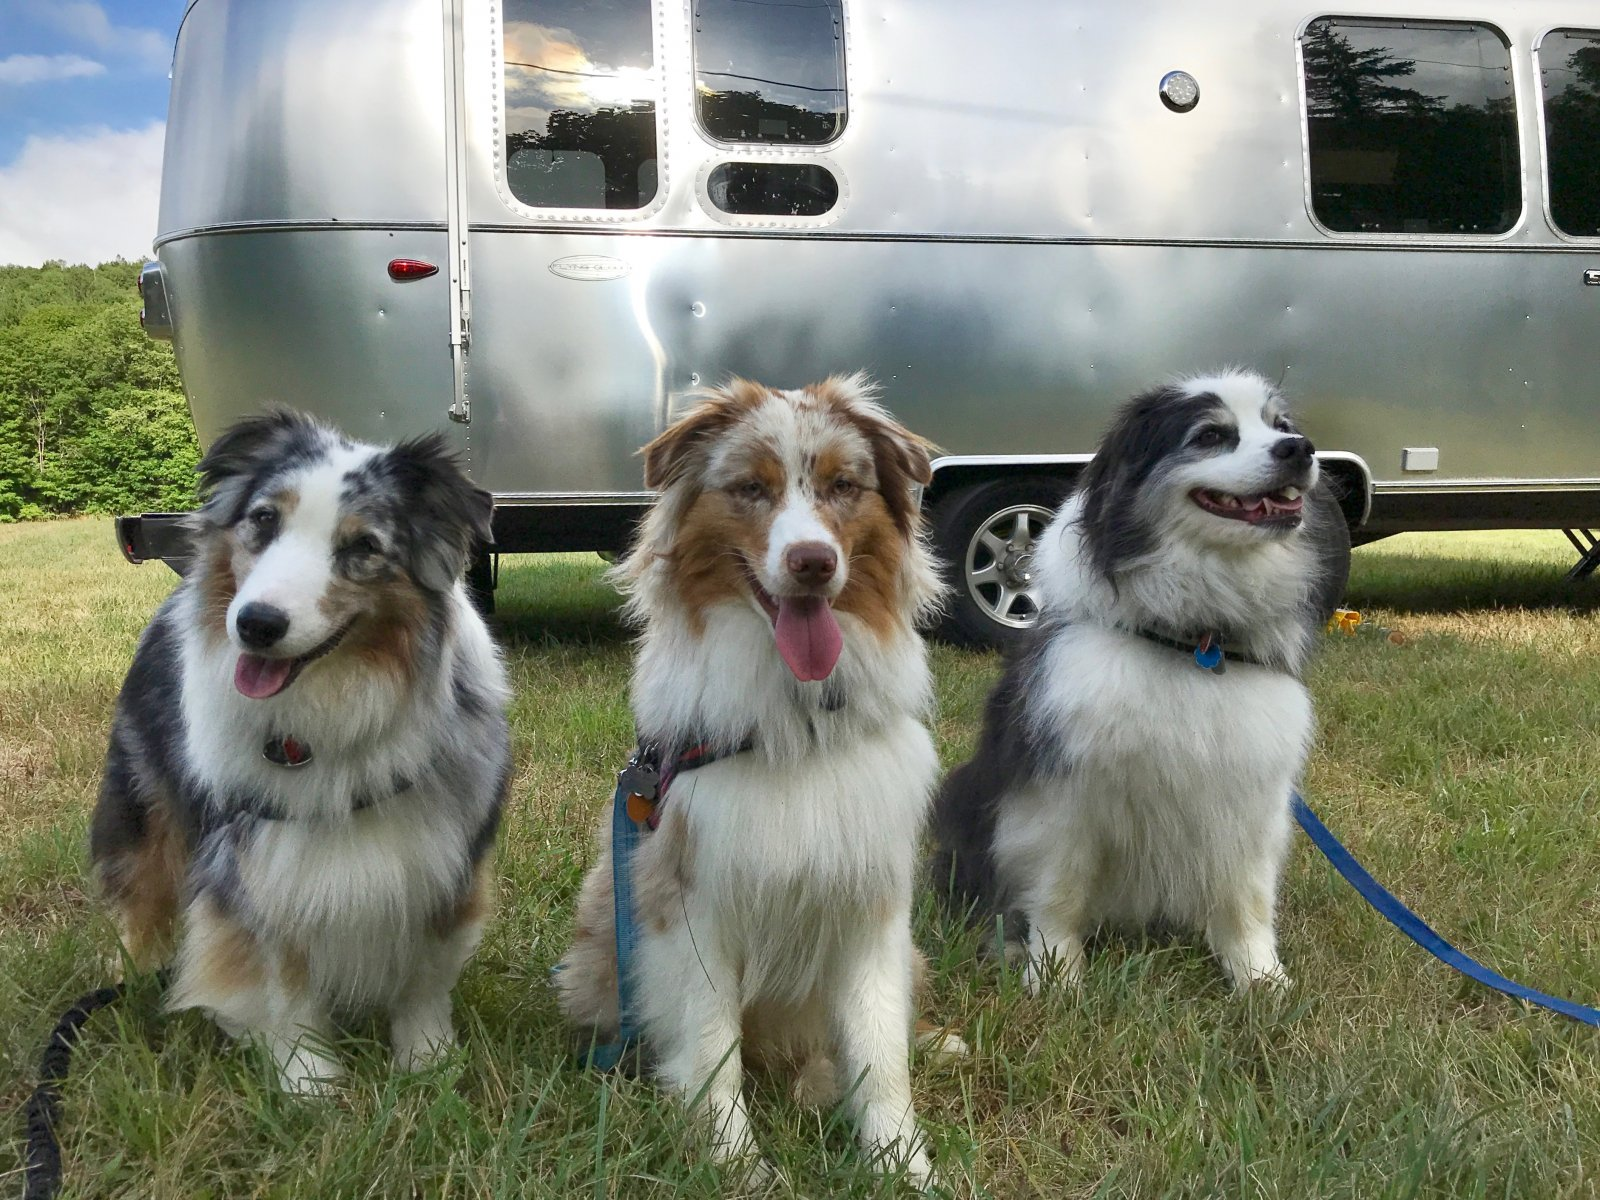 Click image for larger version  Name:Pups  airstream.jpg Views:77 Size:415.9 KB ID:331629